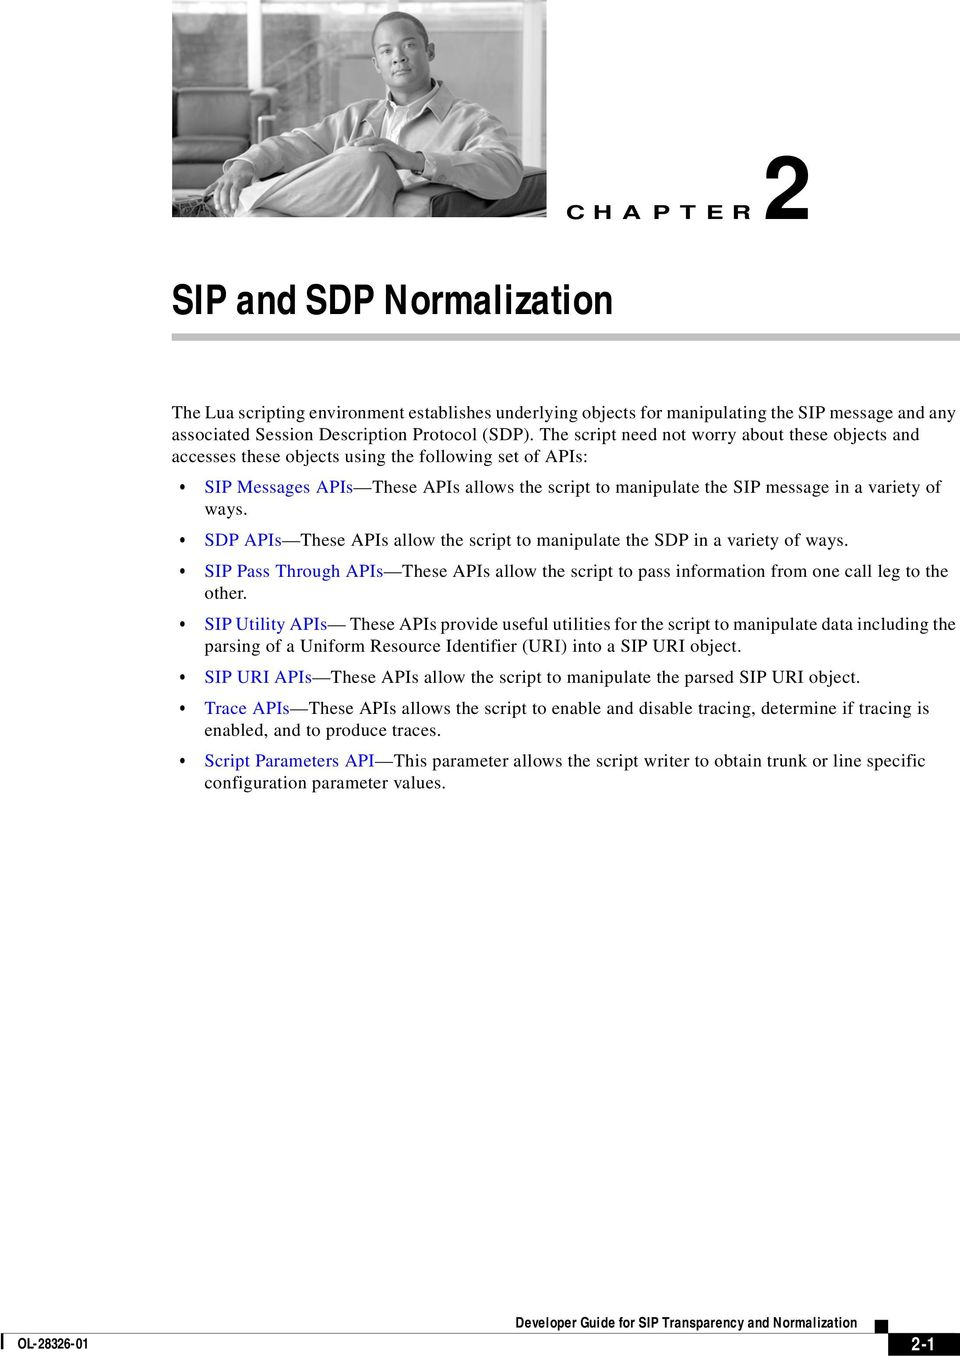 These APIs allow the script to manipulate the SDP in a variety of ways SIP Pass Through APIs These APIs allow the script to pass information from one call leg to the other SIP Utility APIs These APIs